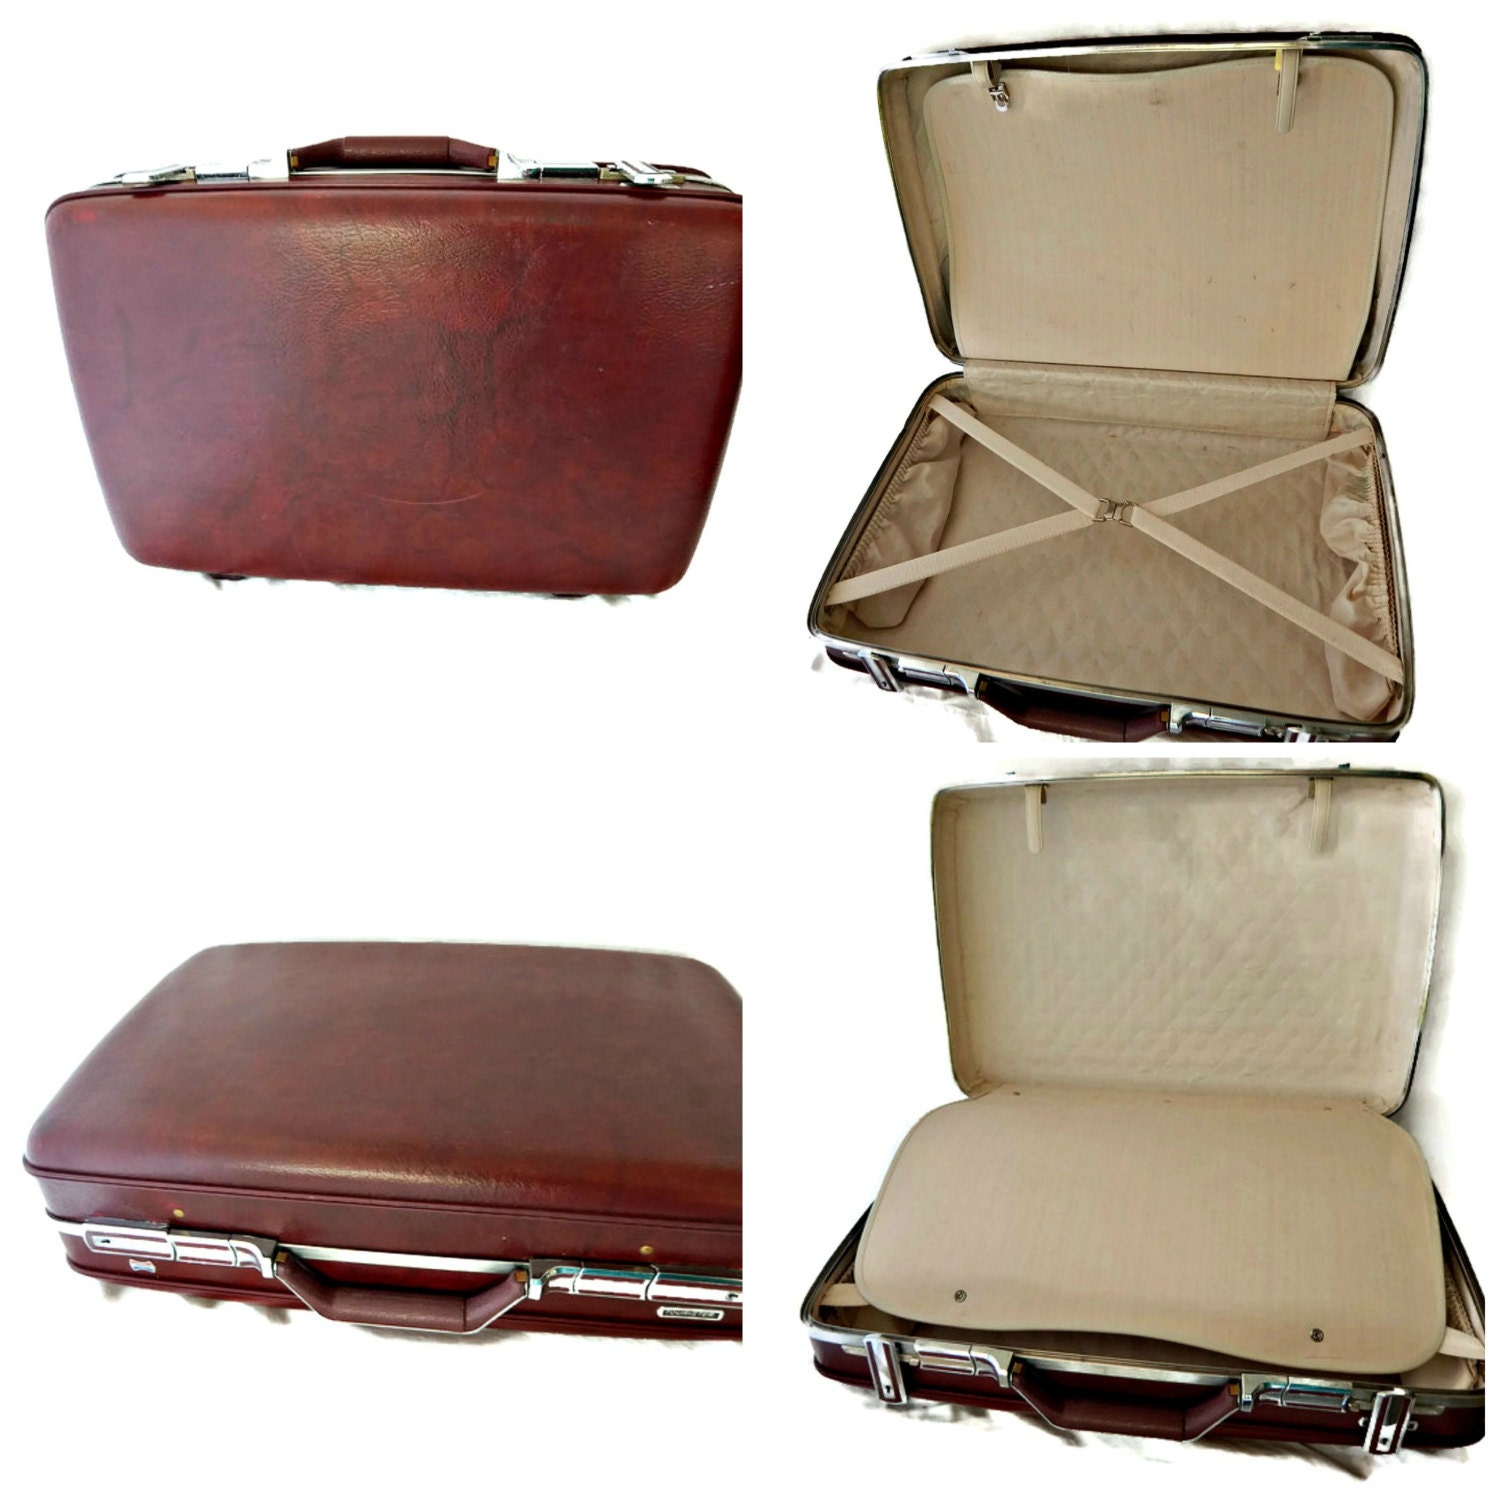 american tourister suitcase hard shell case luggage marbled. Black Bedroom Furniture Sets. Home Design Ideas